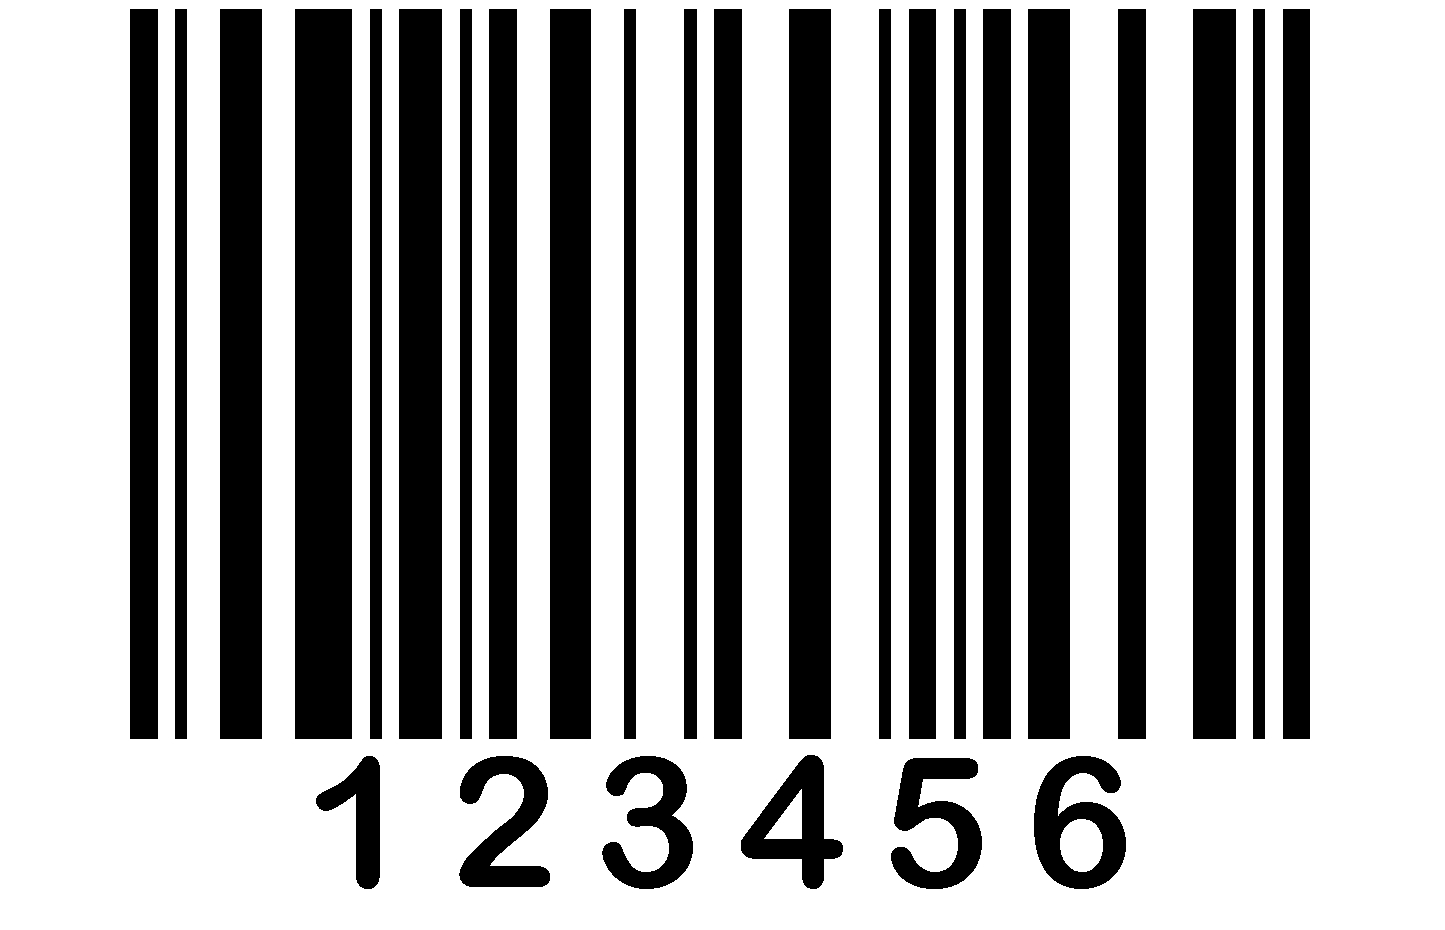 More Applications for Barcodes, RFID and Handheld